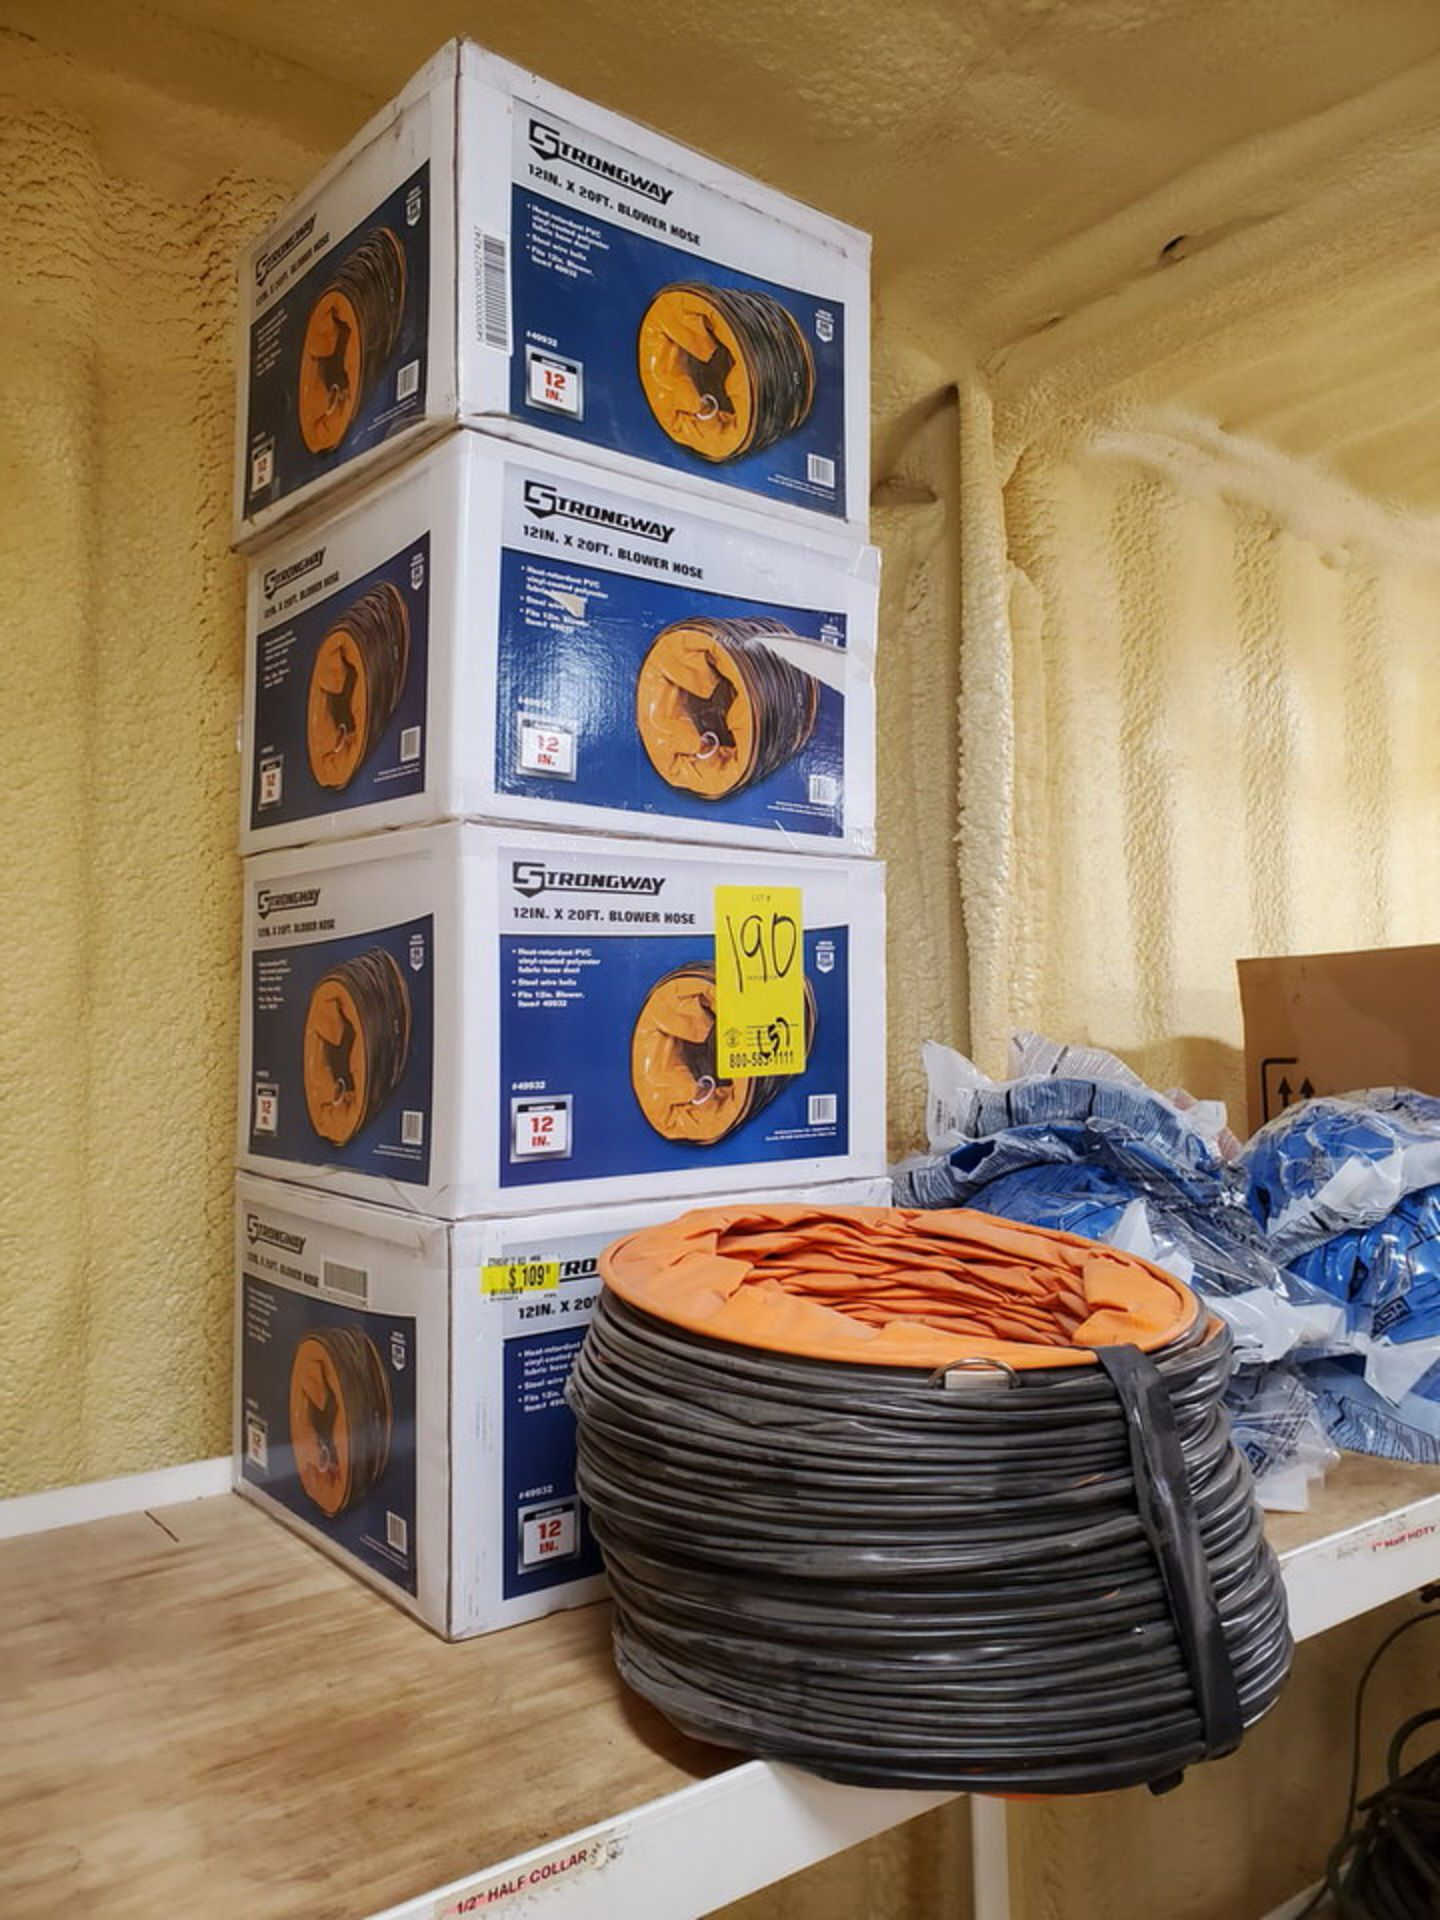 """Strongway 12"""" x 20' Blower Hoses - Image 3 of 4"""